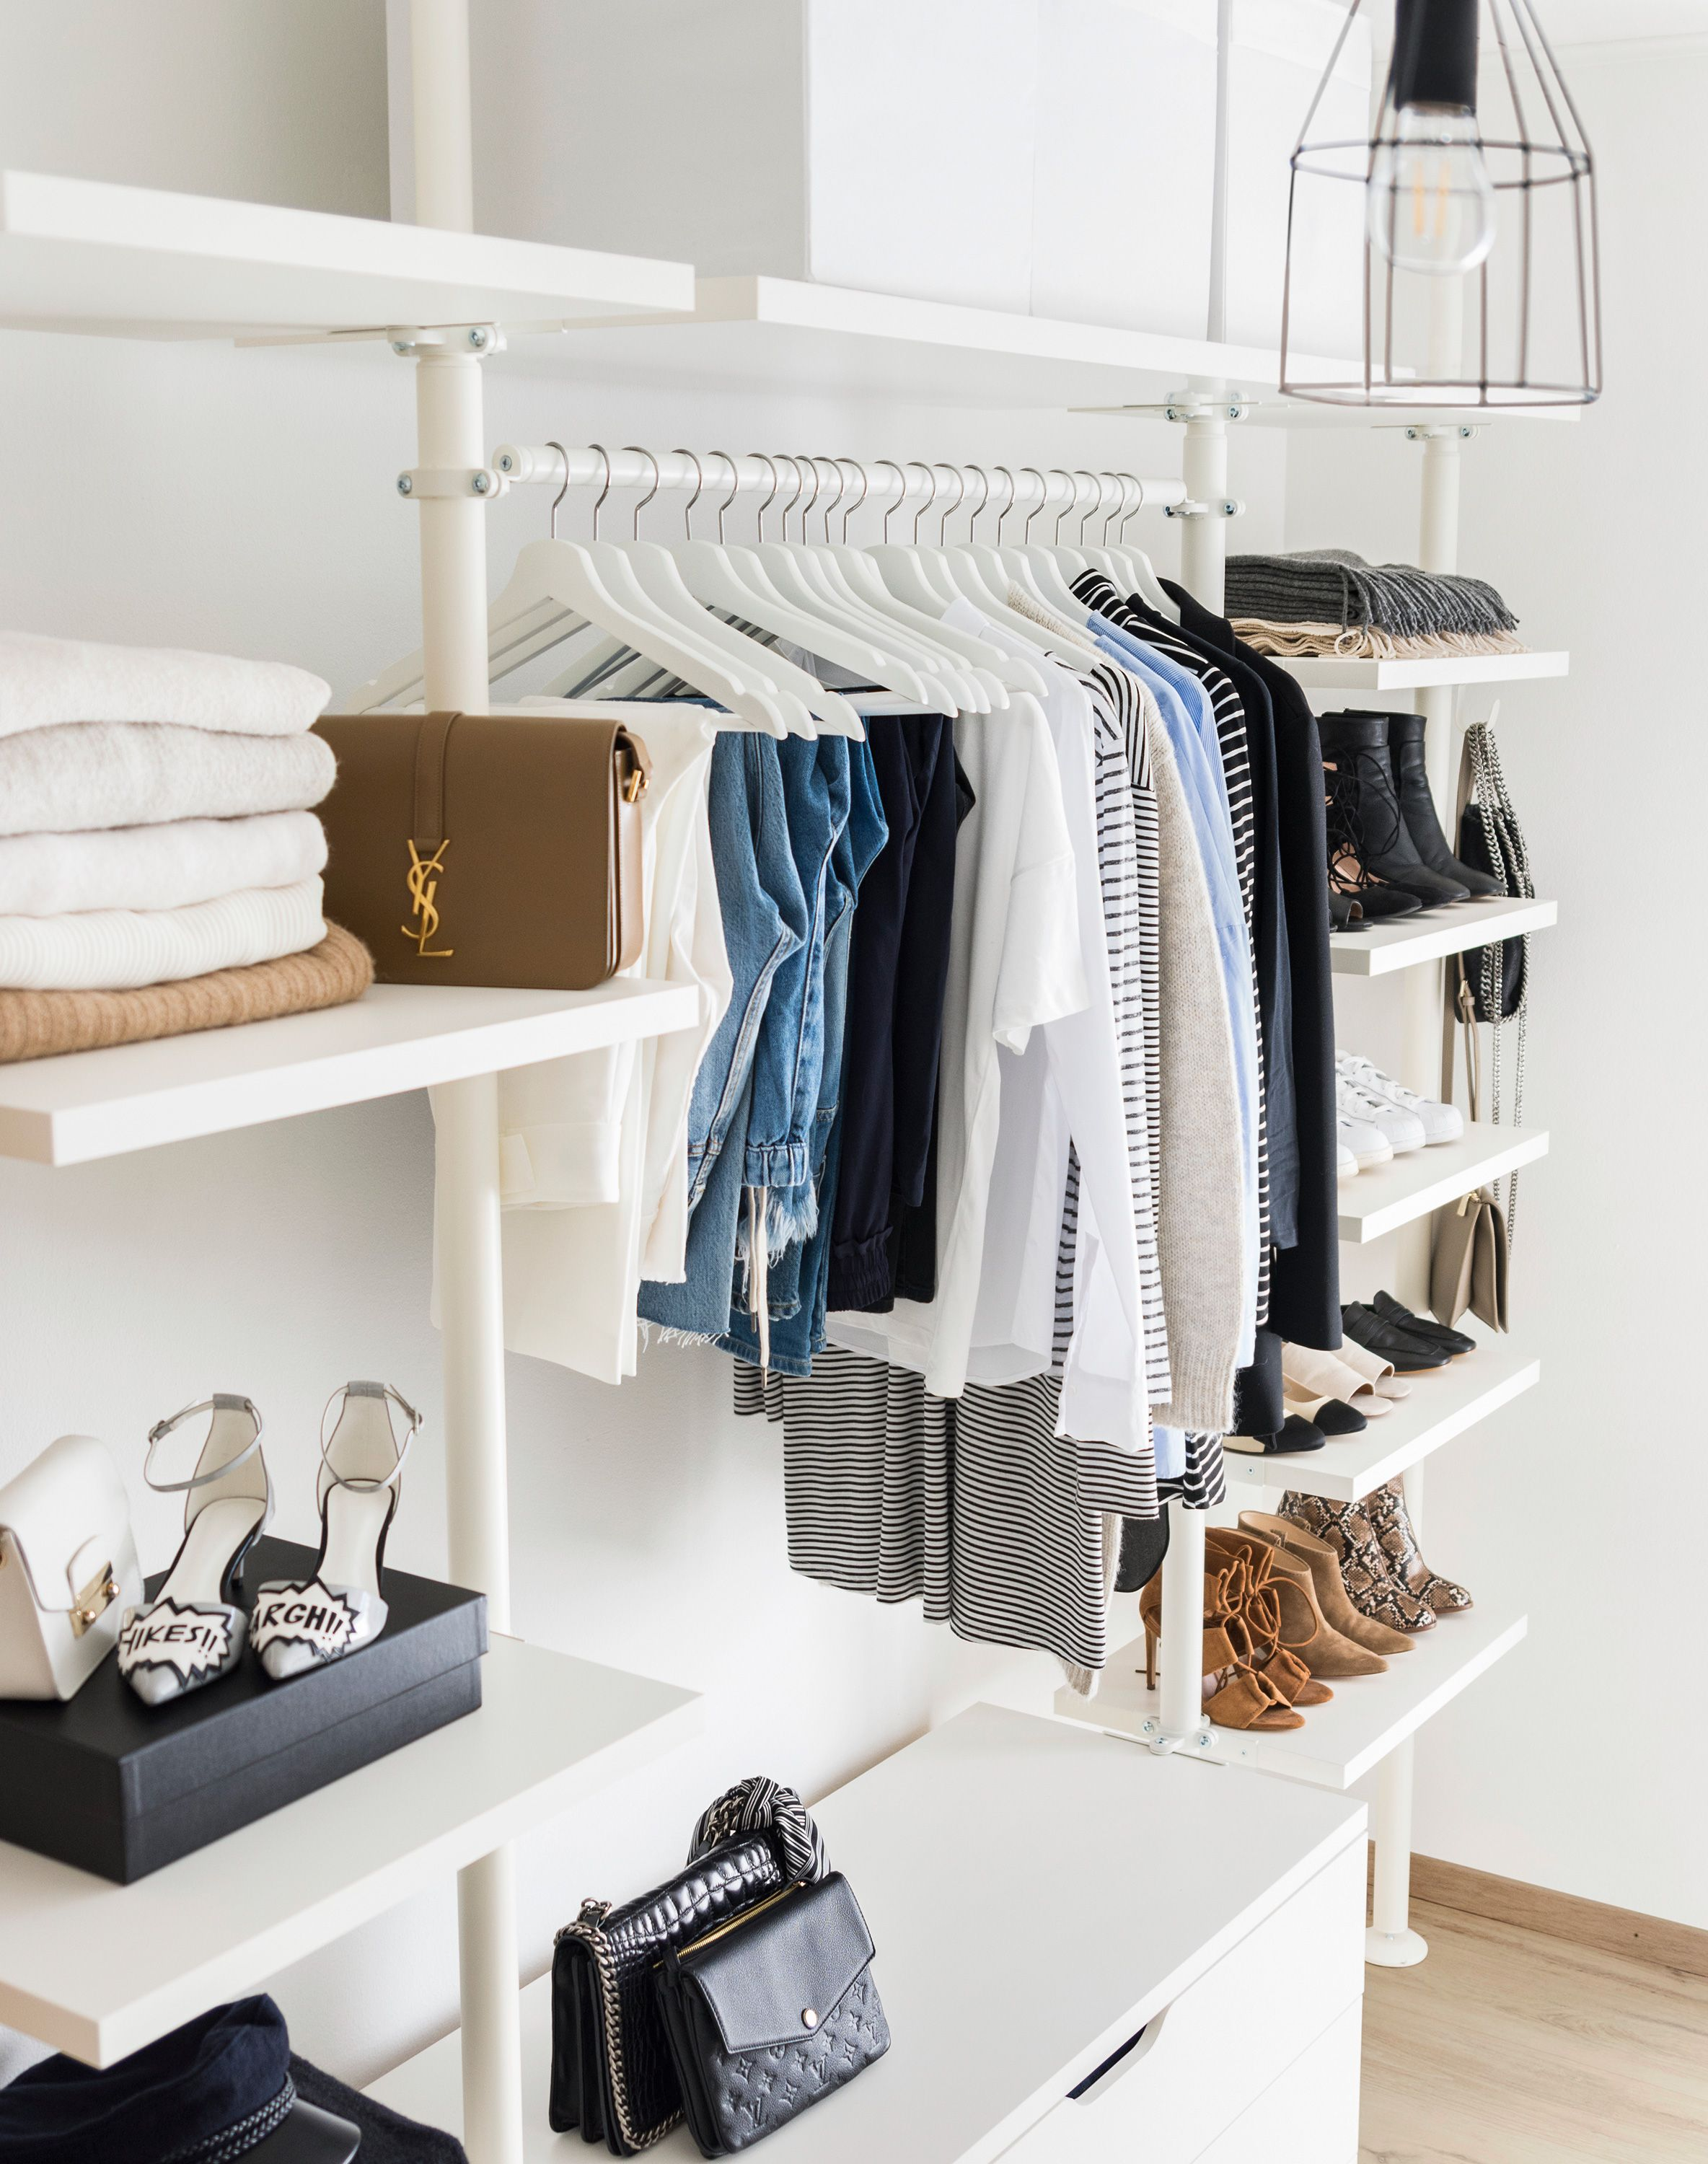 Get Closet Organization Ideas From This Old House Storage